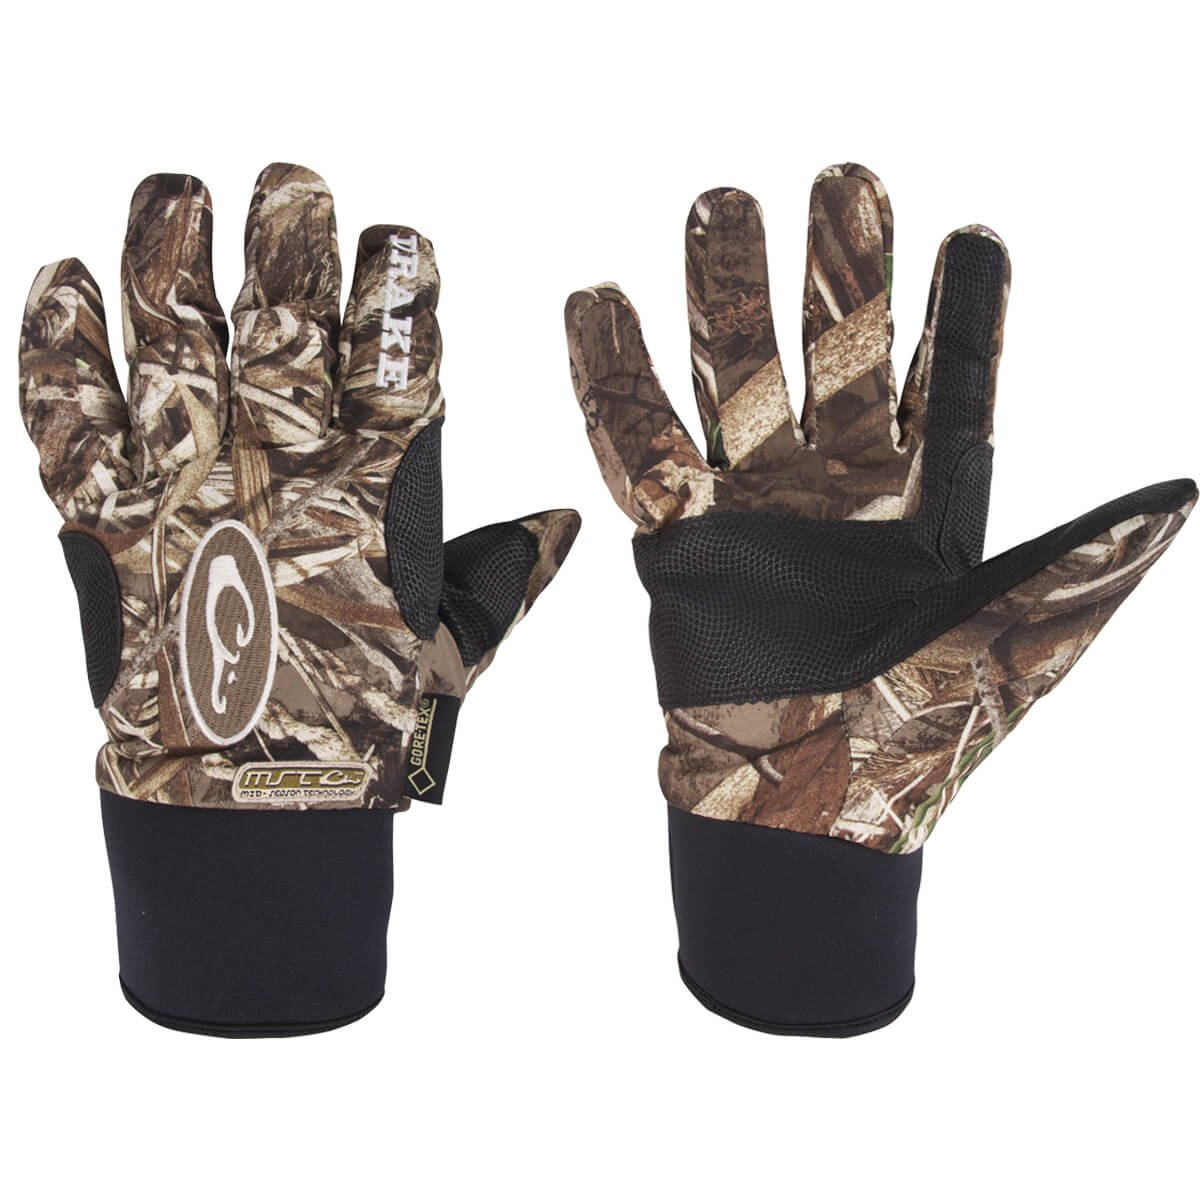 Drake Waterfowl Men's MST Refuge Hs Gore-Tex Glove Realtree Max 5 (L) by Drake